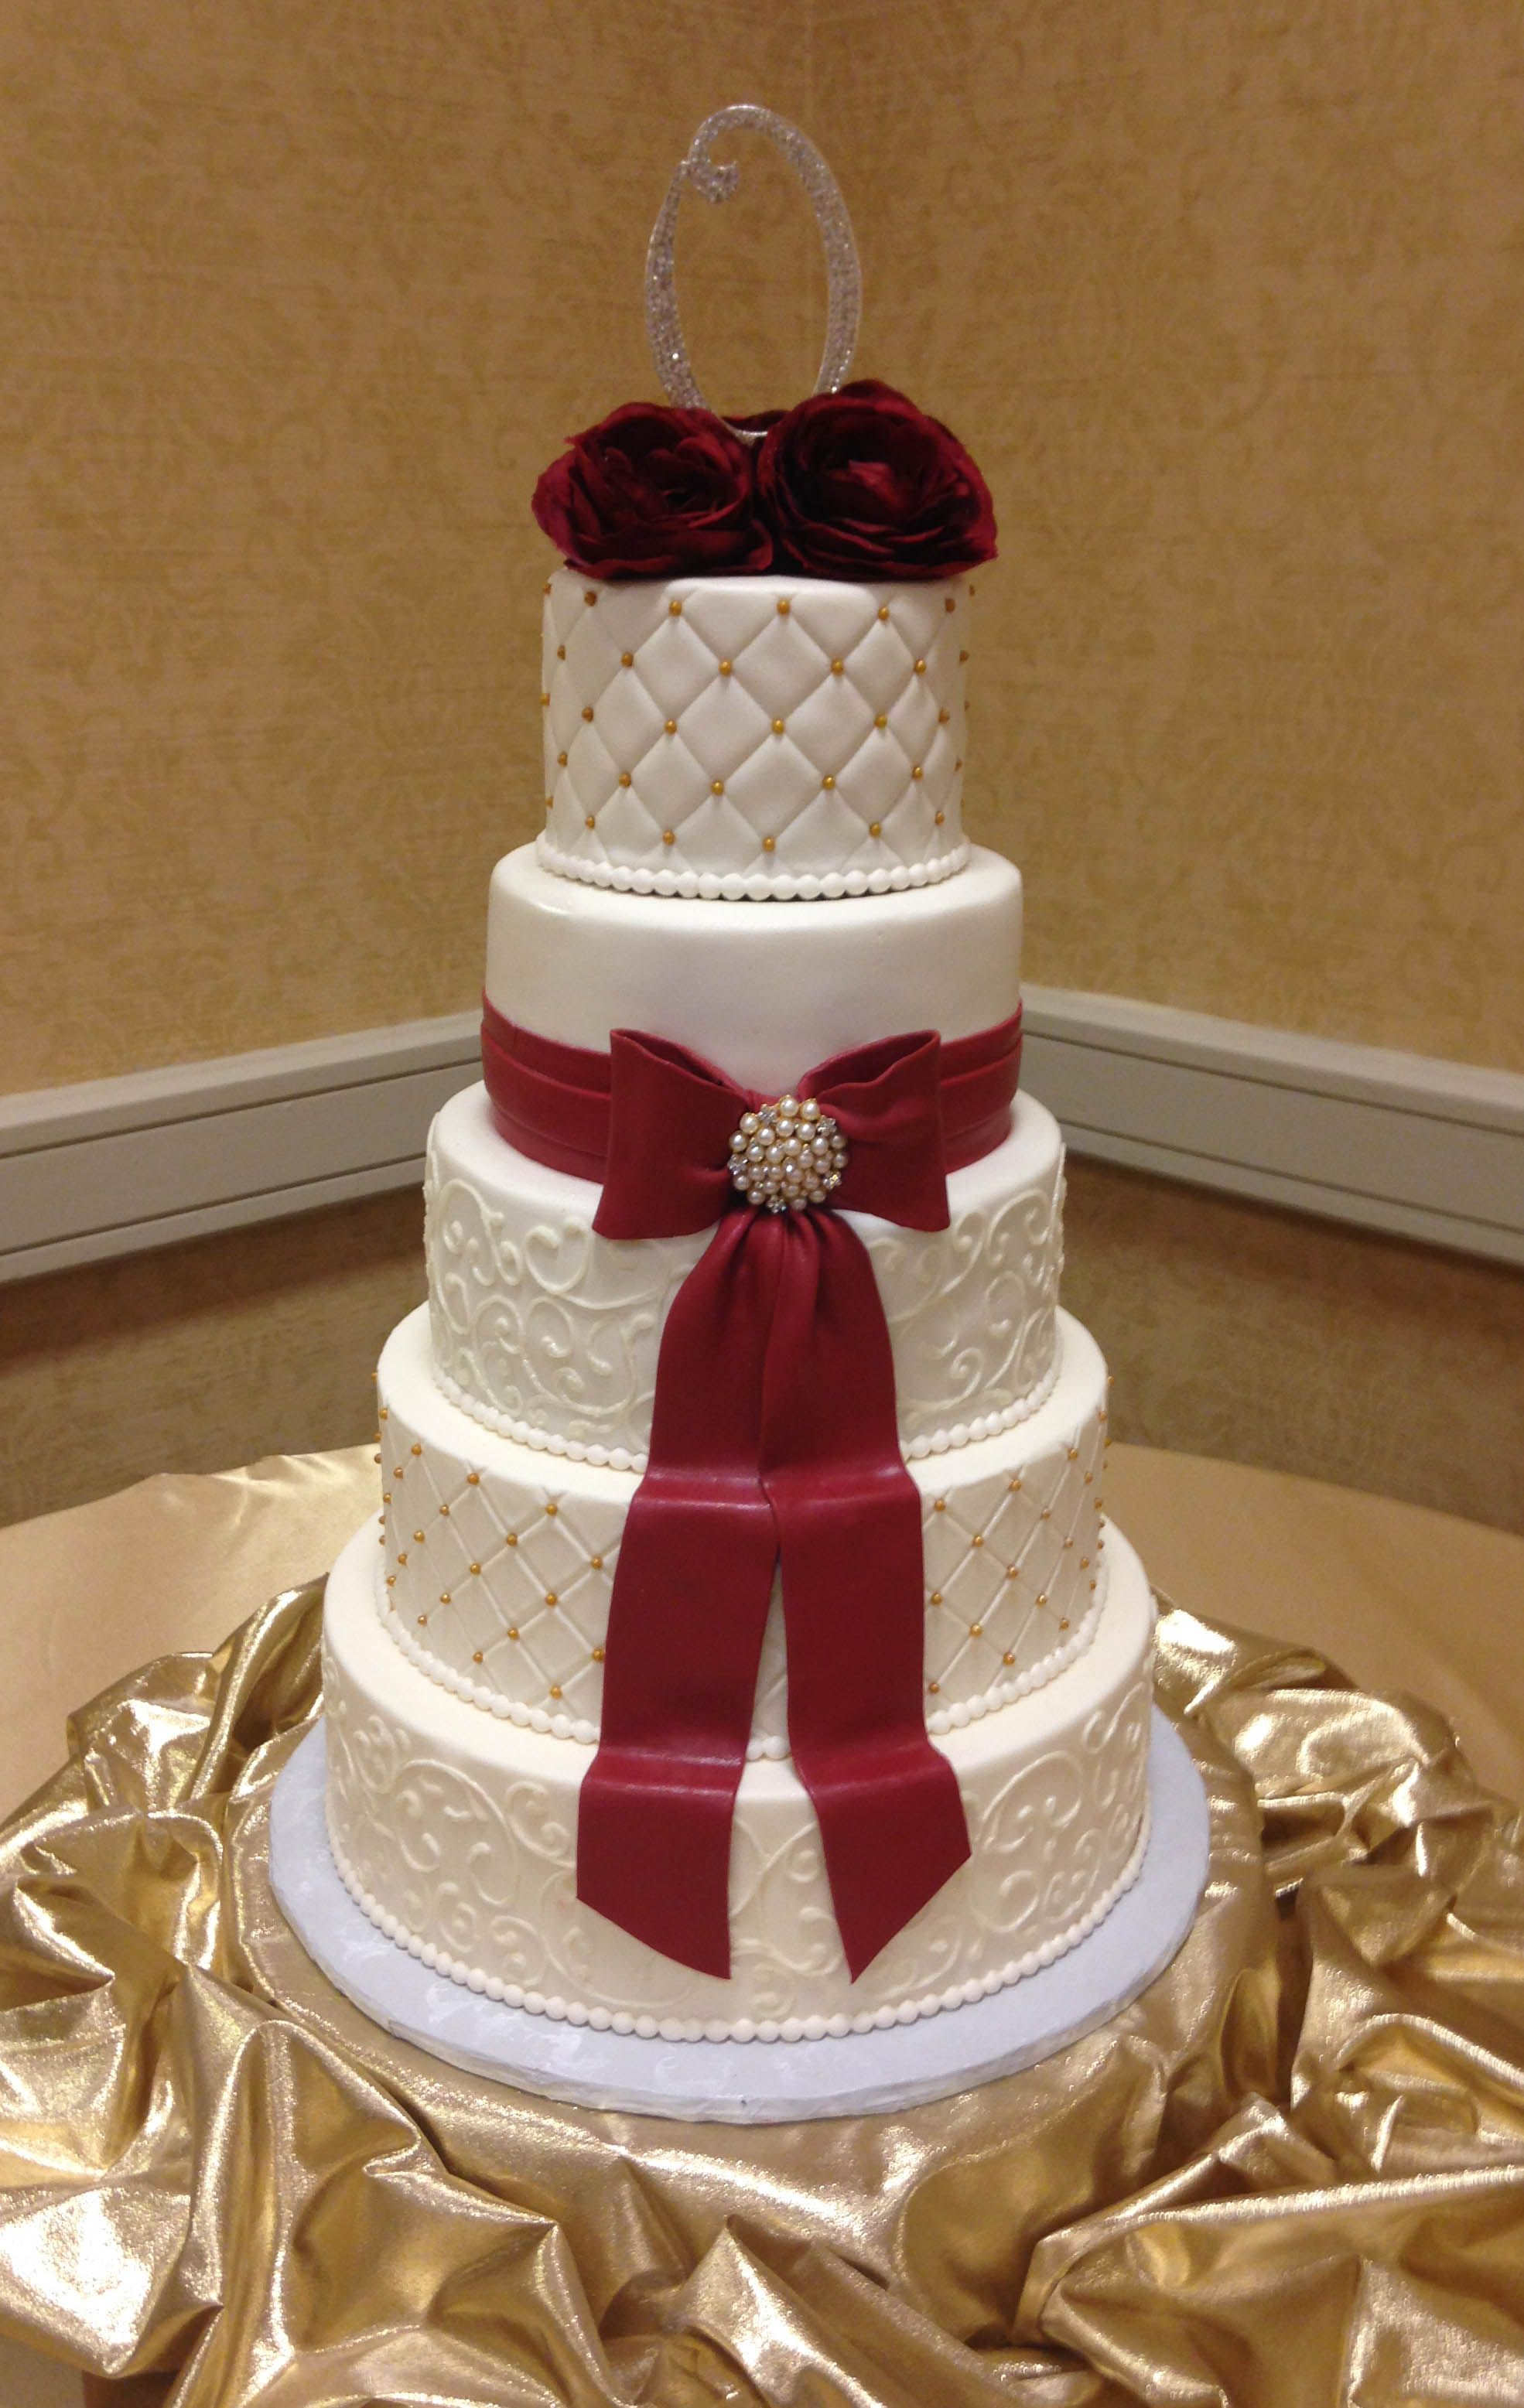 Crimson & gold classic wedding cake. blismcdonough